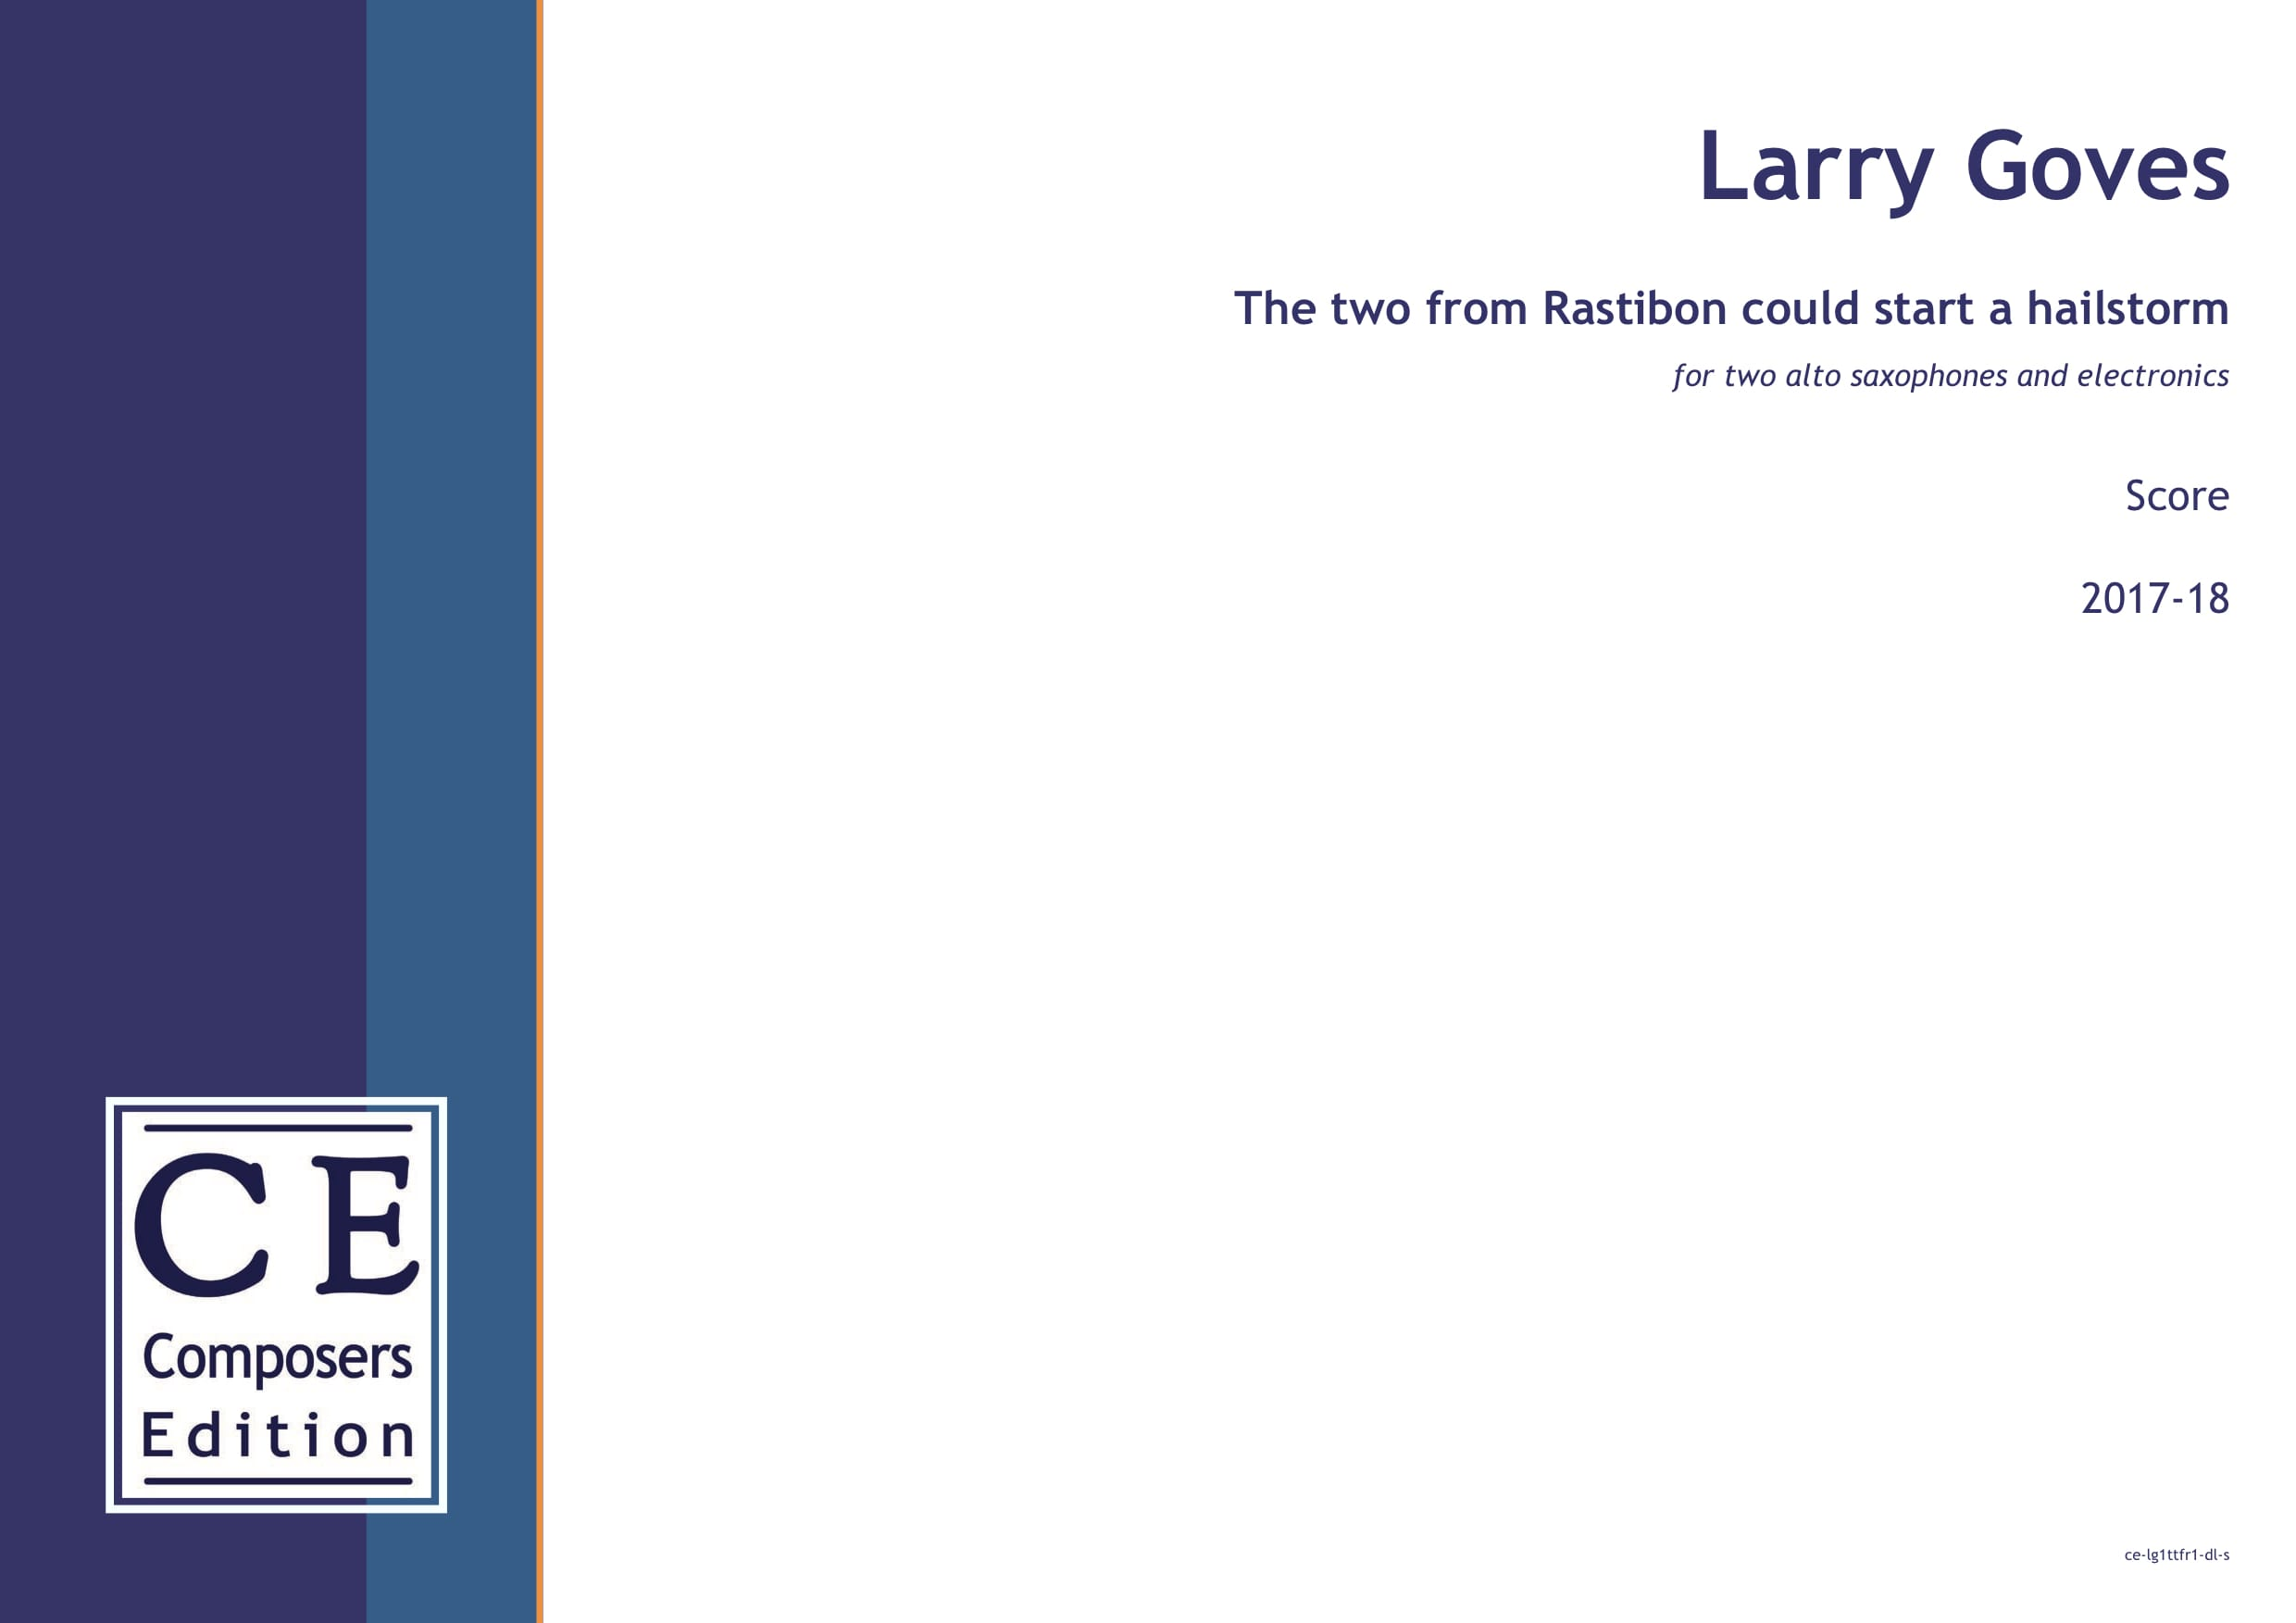 Larry Goves: The two from Rastibon could start a hailstorm for two alto saxophones and electronics